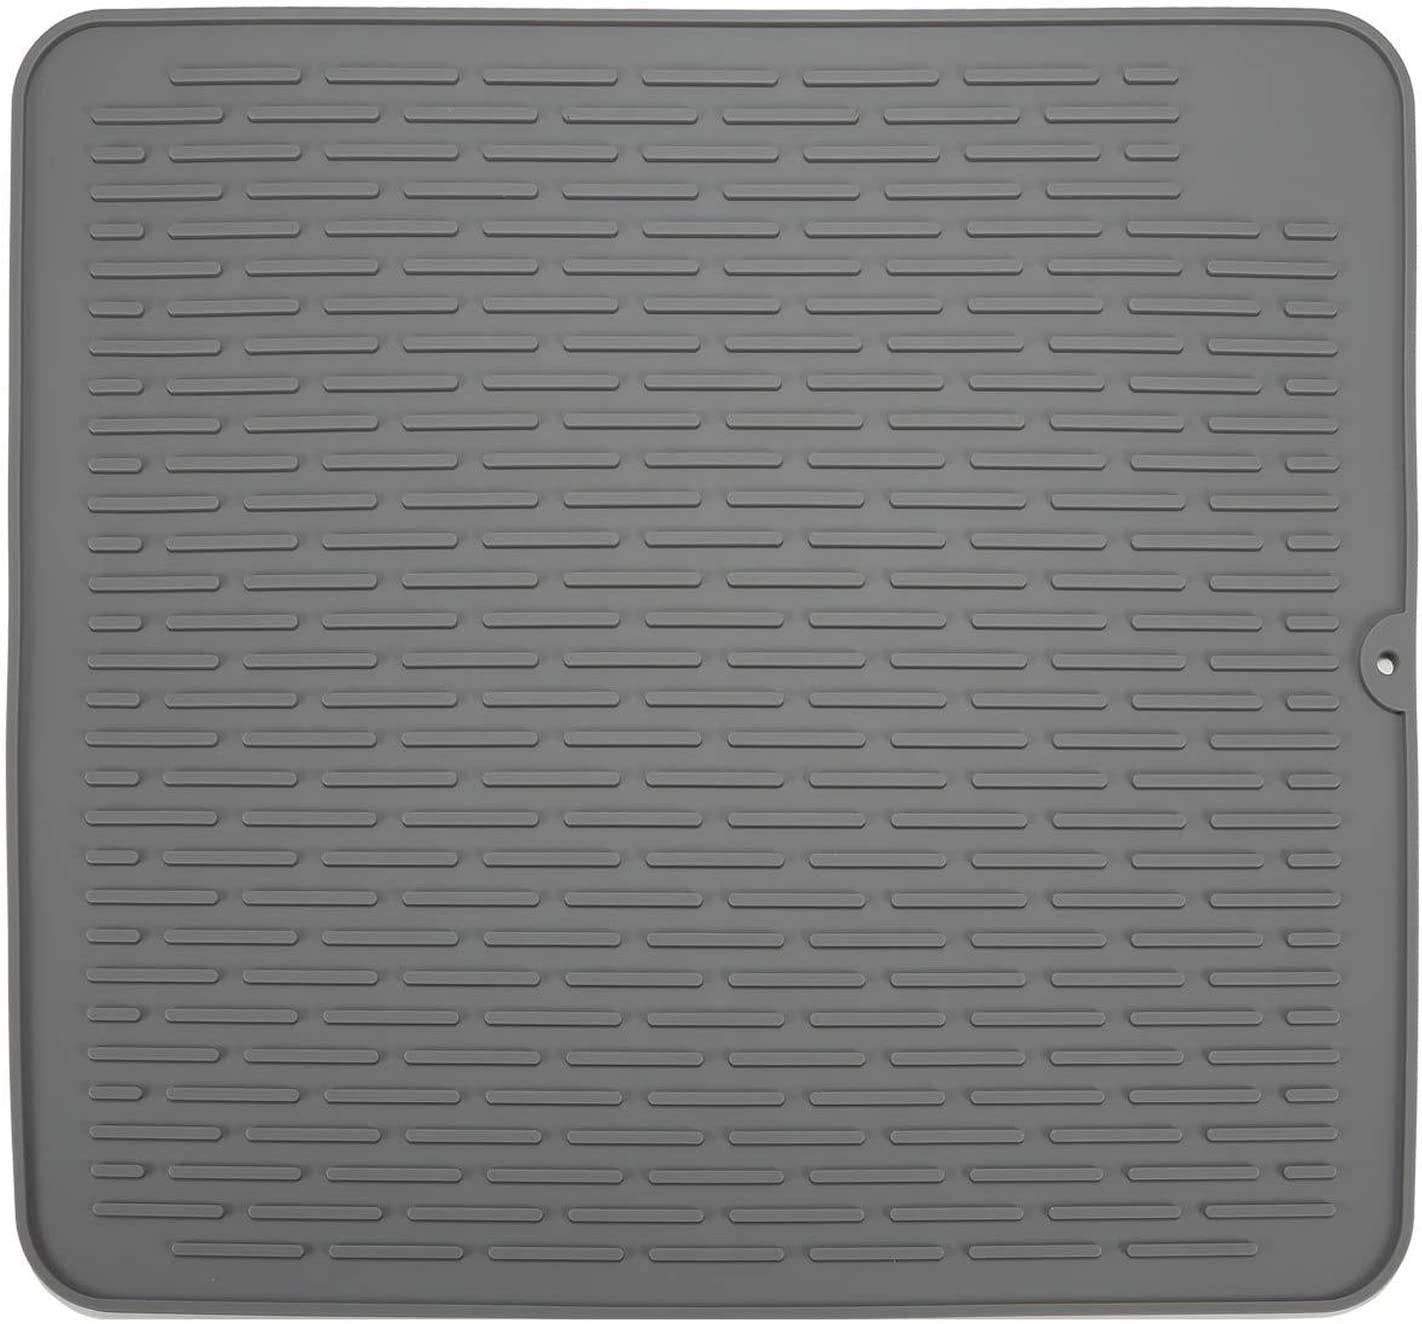 """Extra Large Super Size 23"""" x 18"""" Silicone Dish Drying Mat,Heat Resistant Trivet ,Kitchen Sink Organizer, Premium Countertop Mat, Easy Clean&Dish Washer Safe(Grey)"""